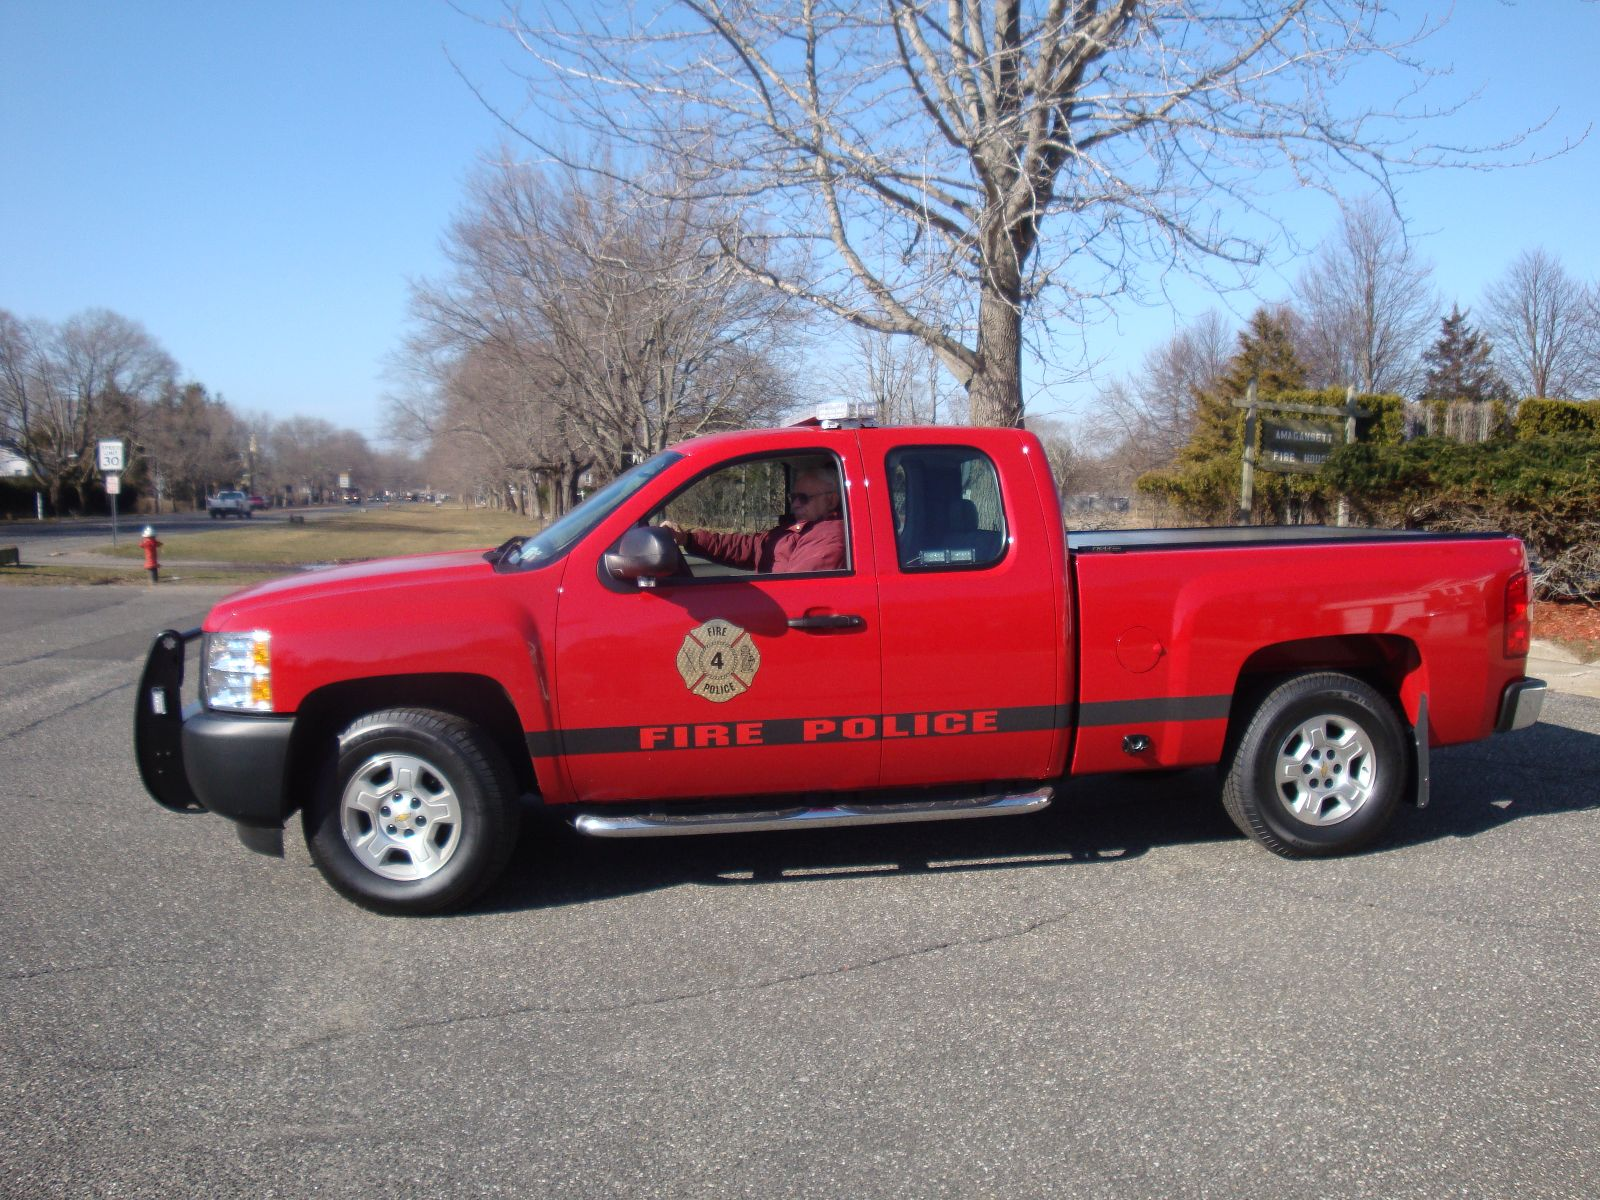 Amaganset Fire Department NY Fire Police Vehicle 9-2-4